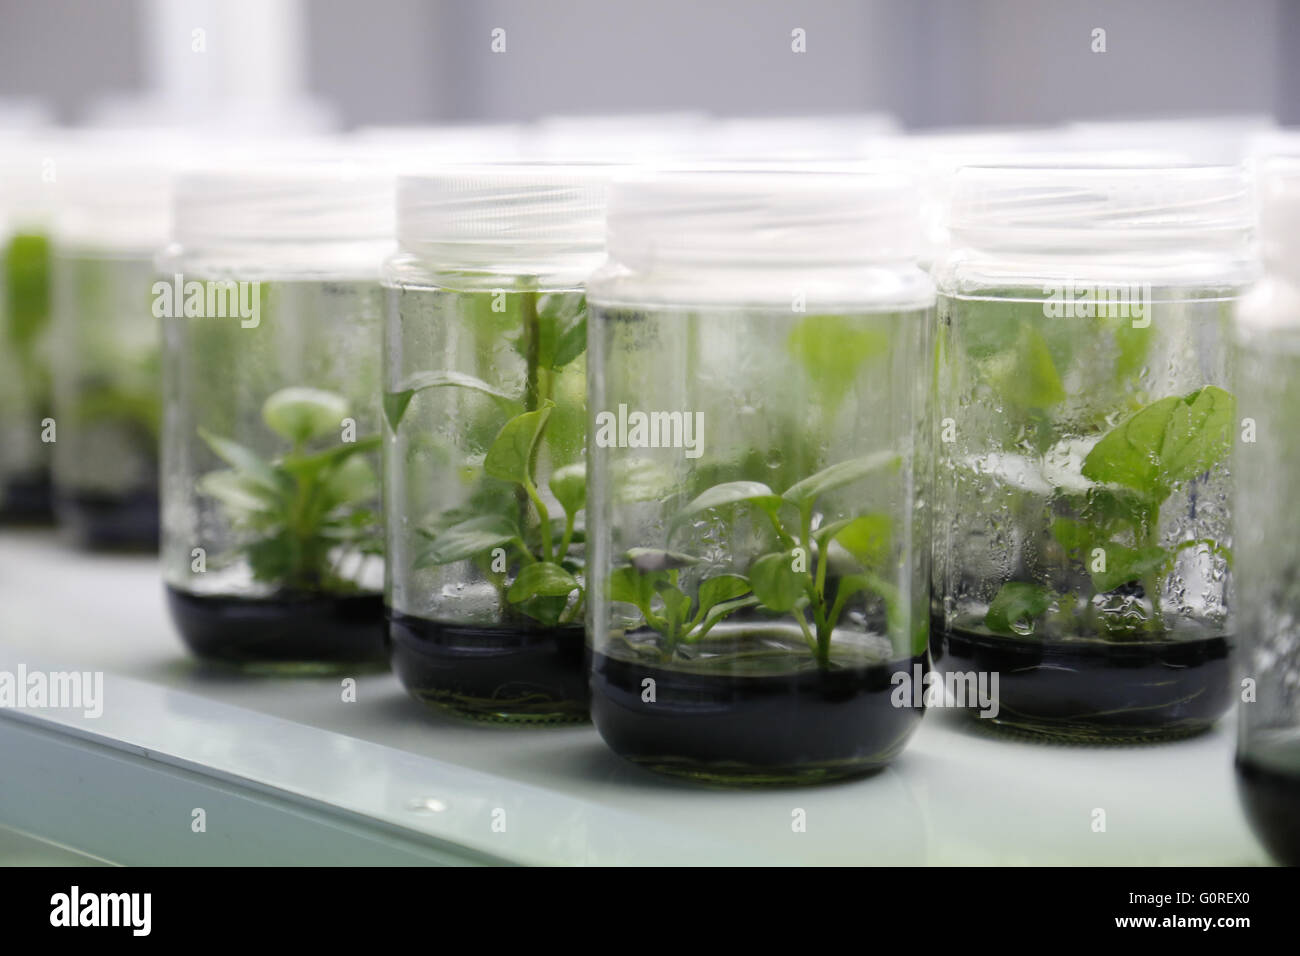 Experimental plants in glass jars in the lab Growing plant specimens in the lab in